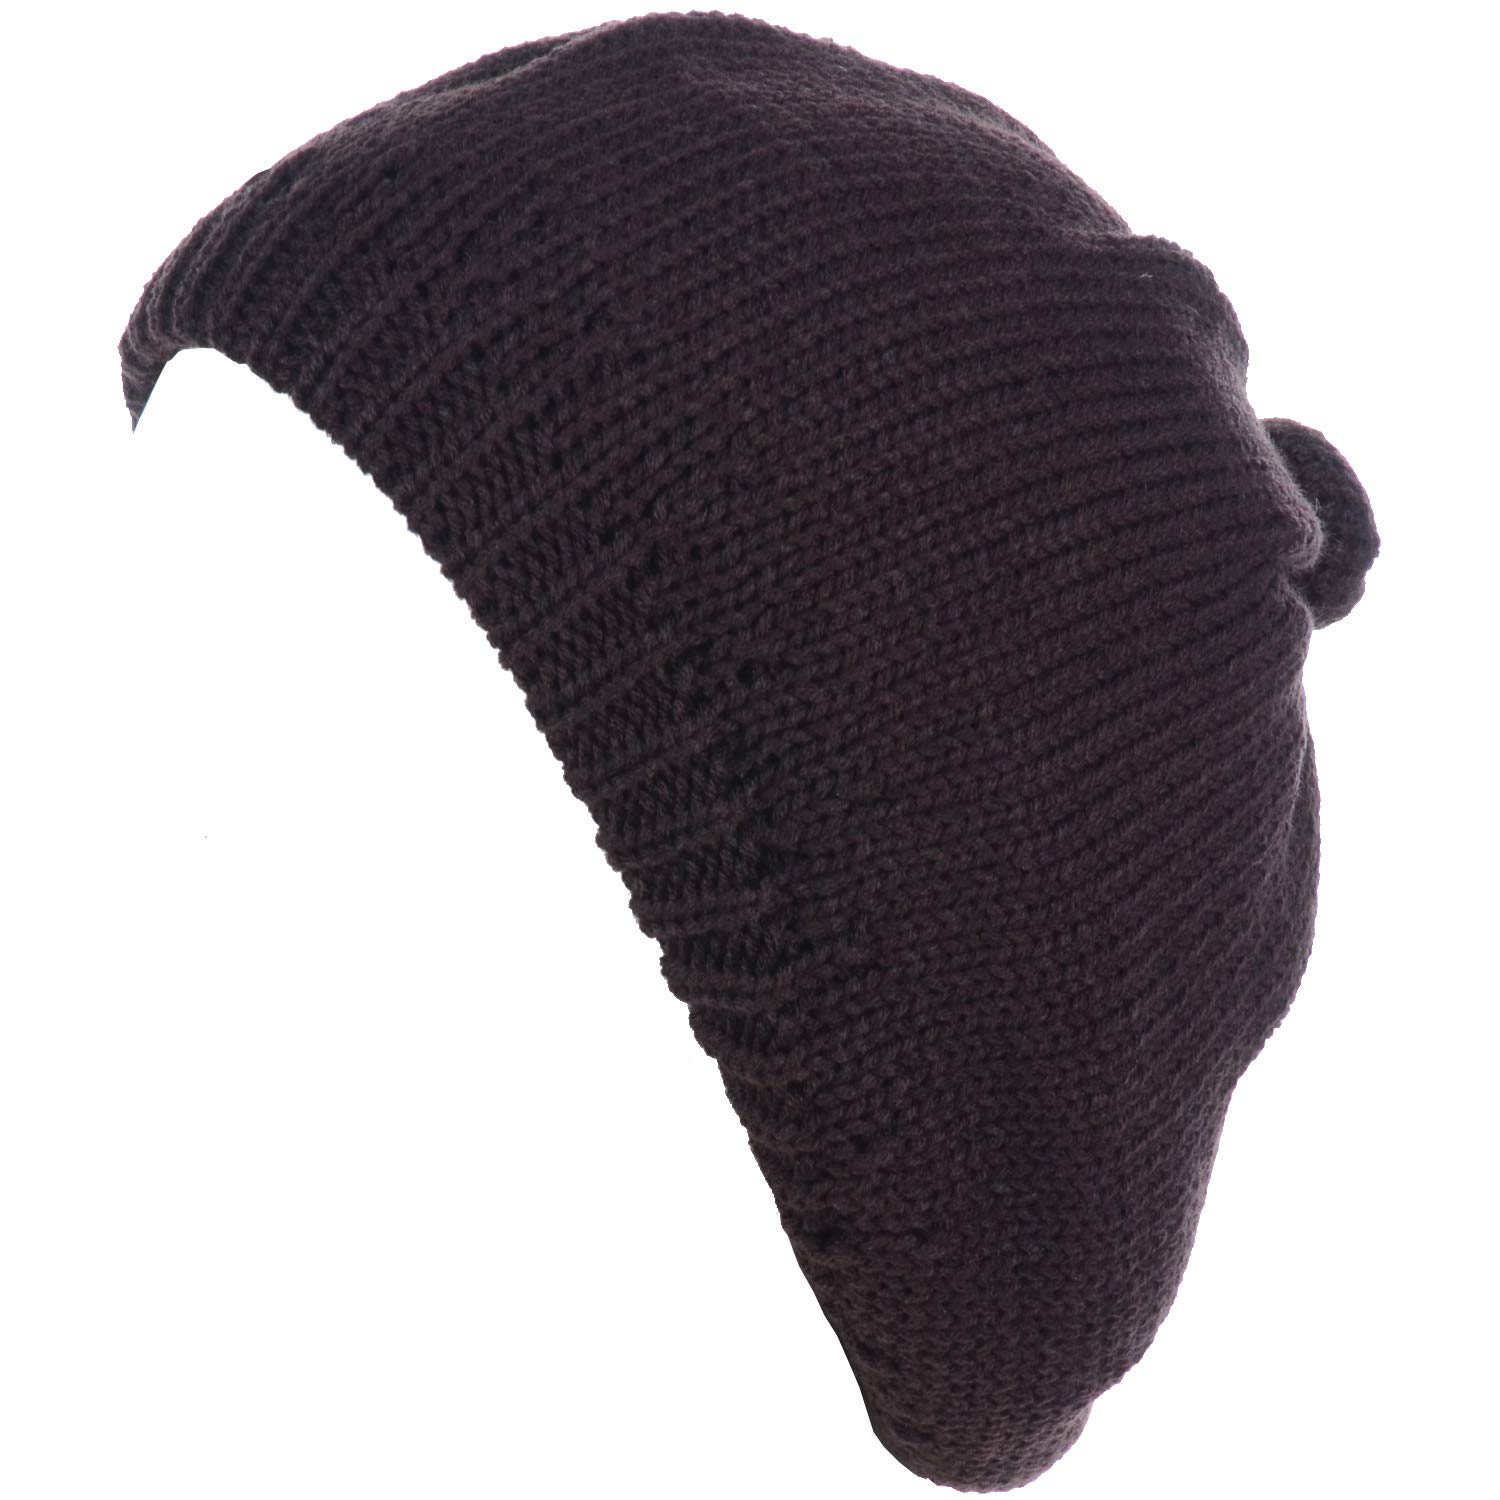 BYOS Womens Winter Classic Cable Fleece Lined Knit Beret Beanie Hat Gloves Set